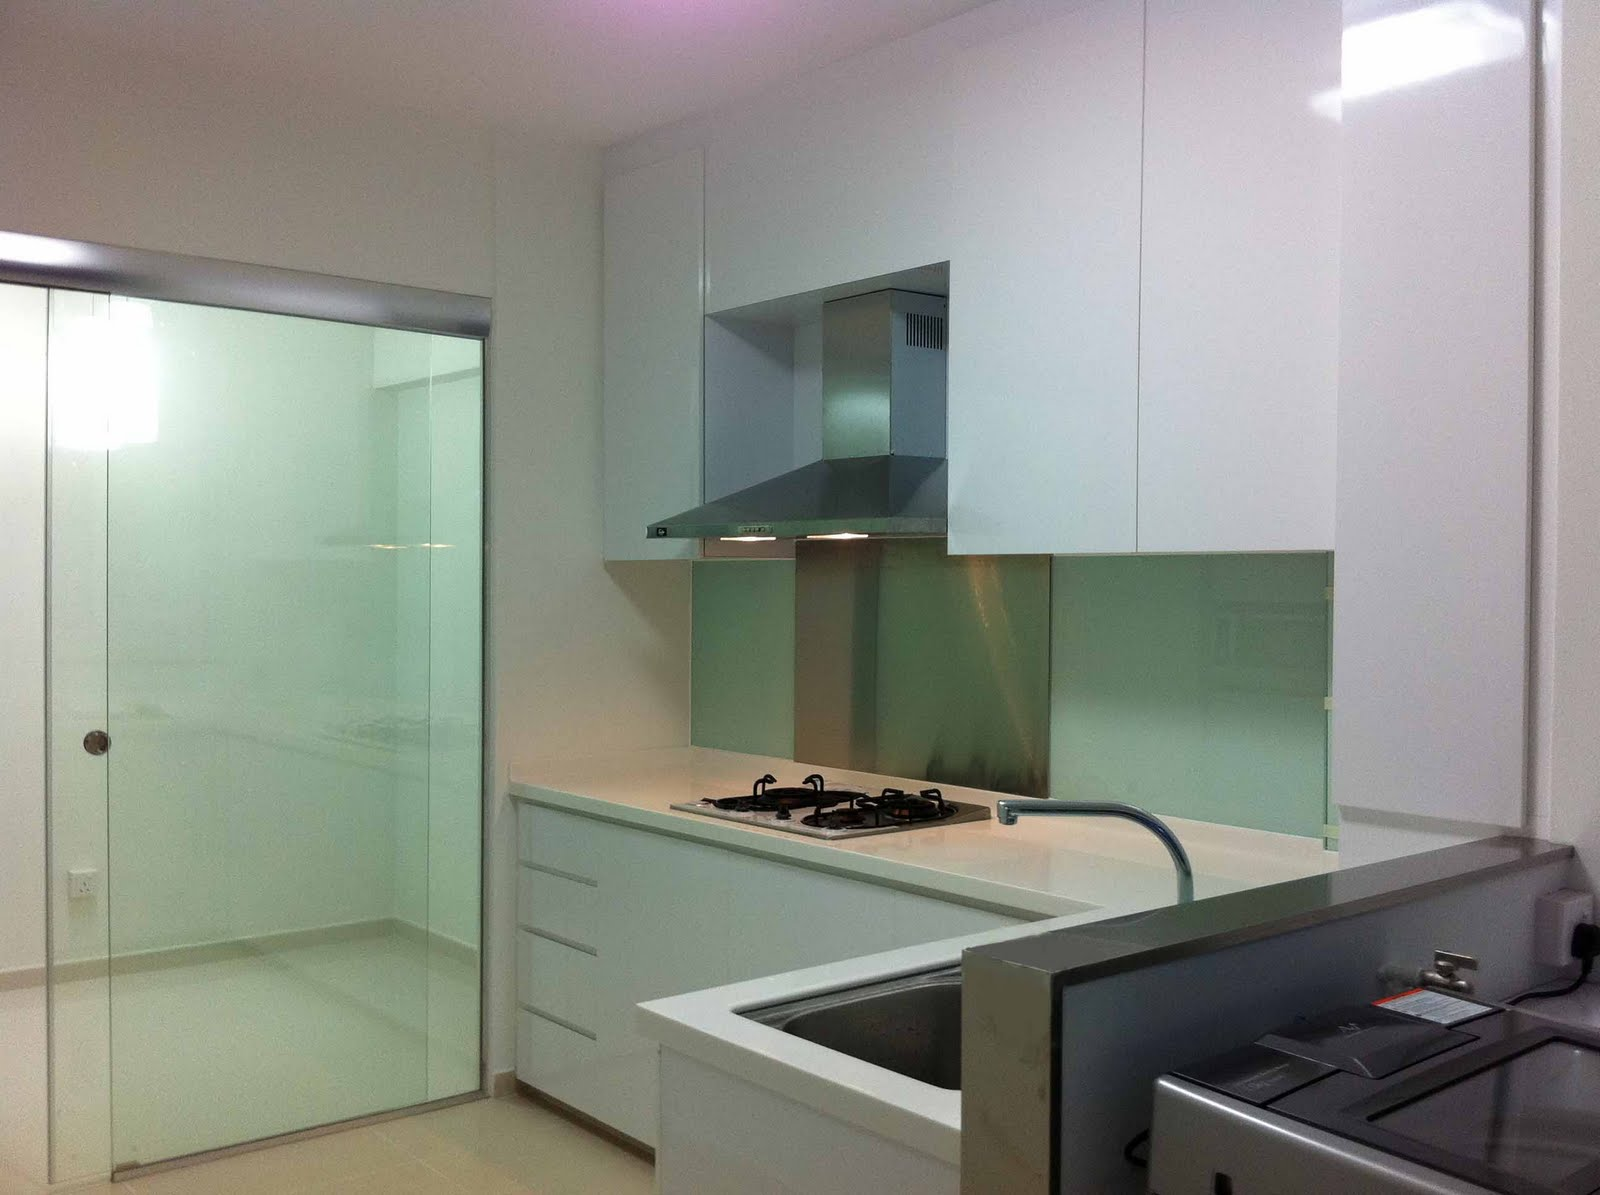 Hdb kitchen design Kitchen design in hdb